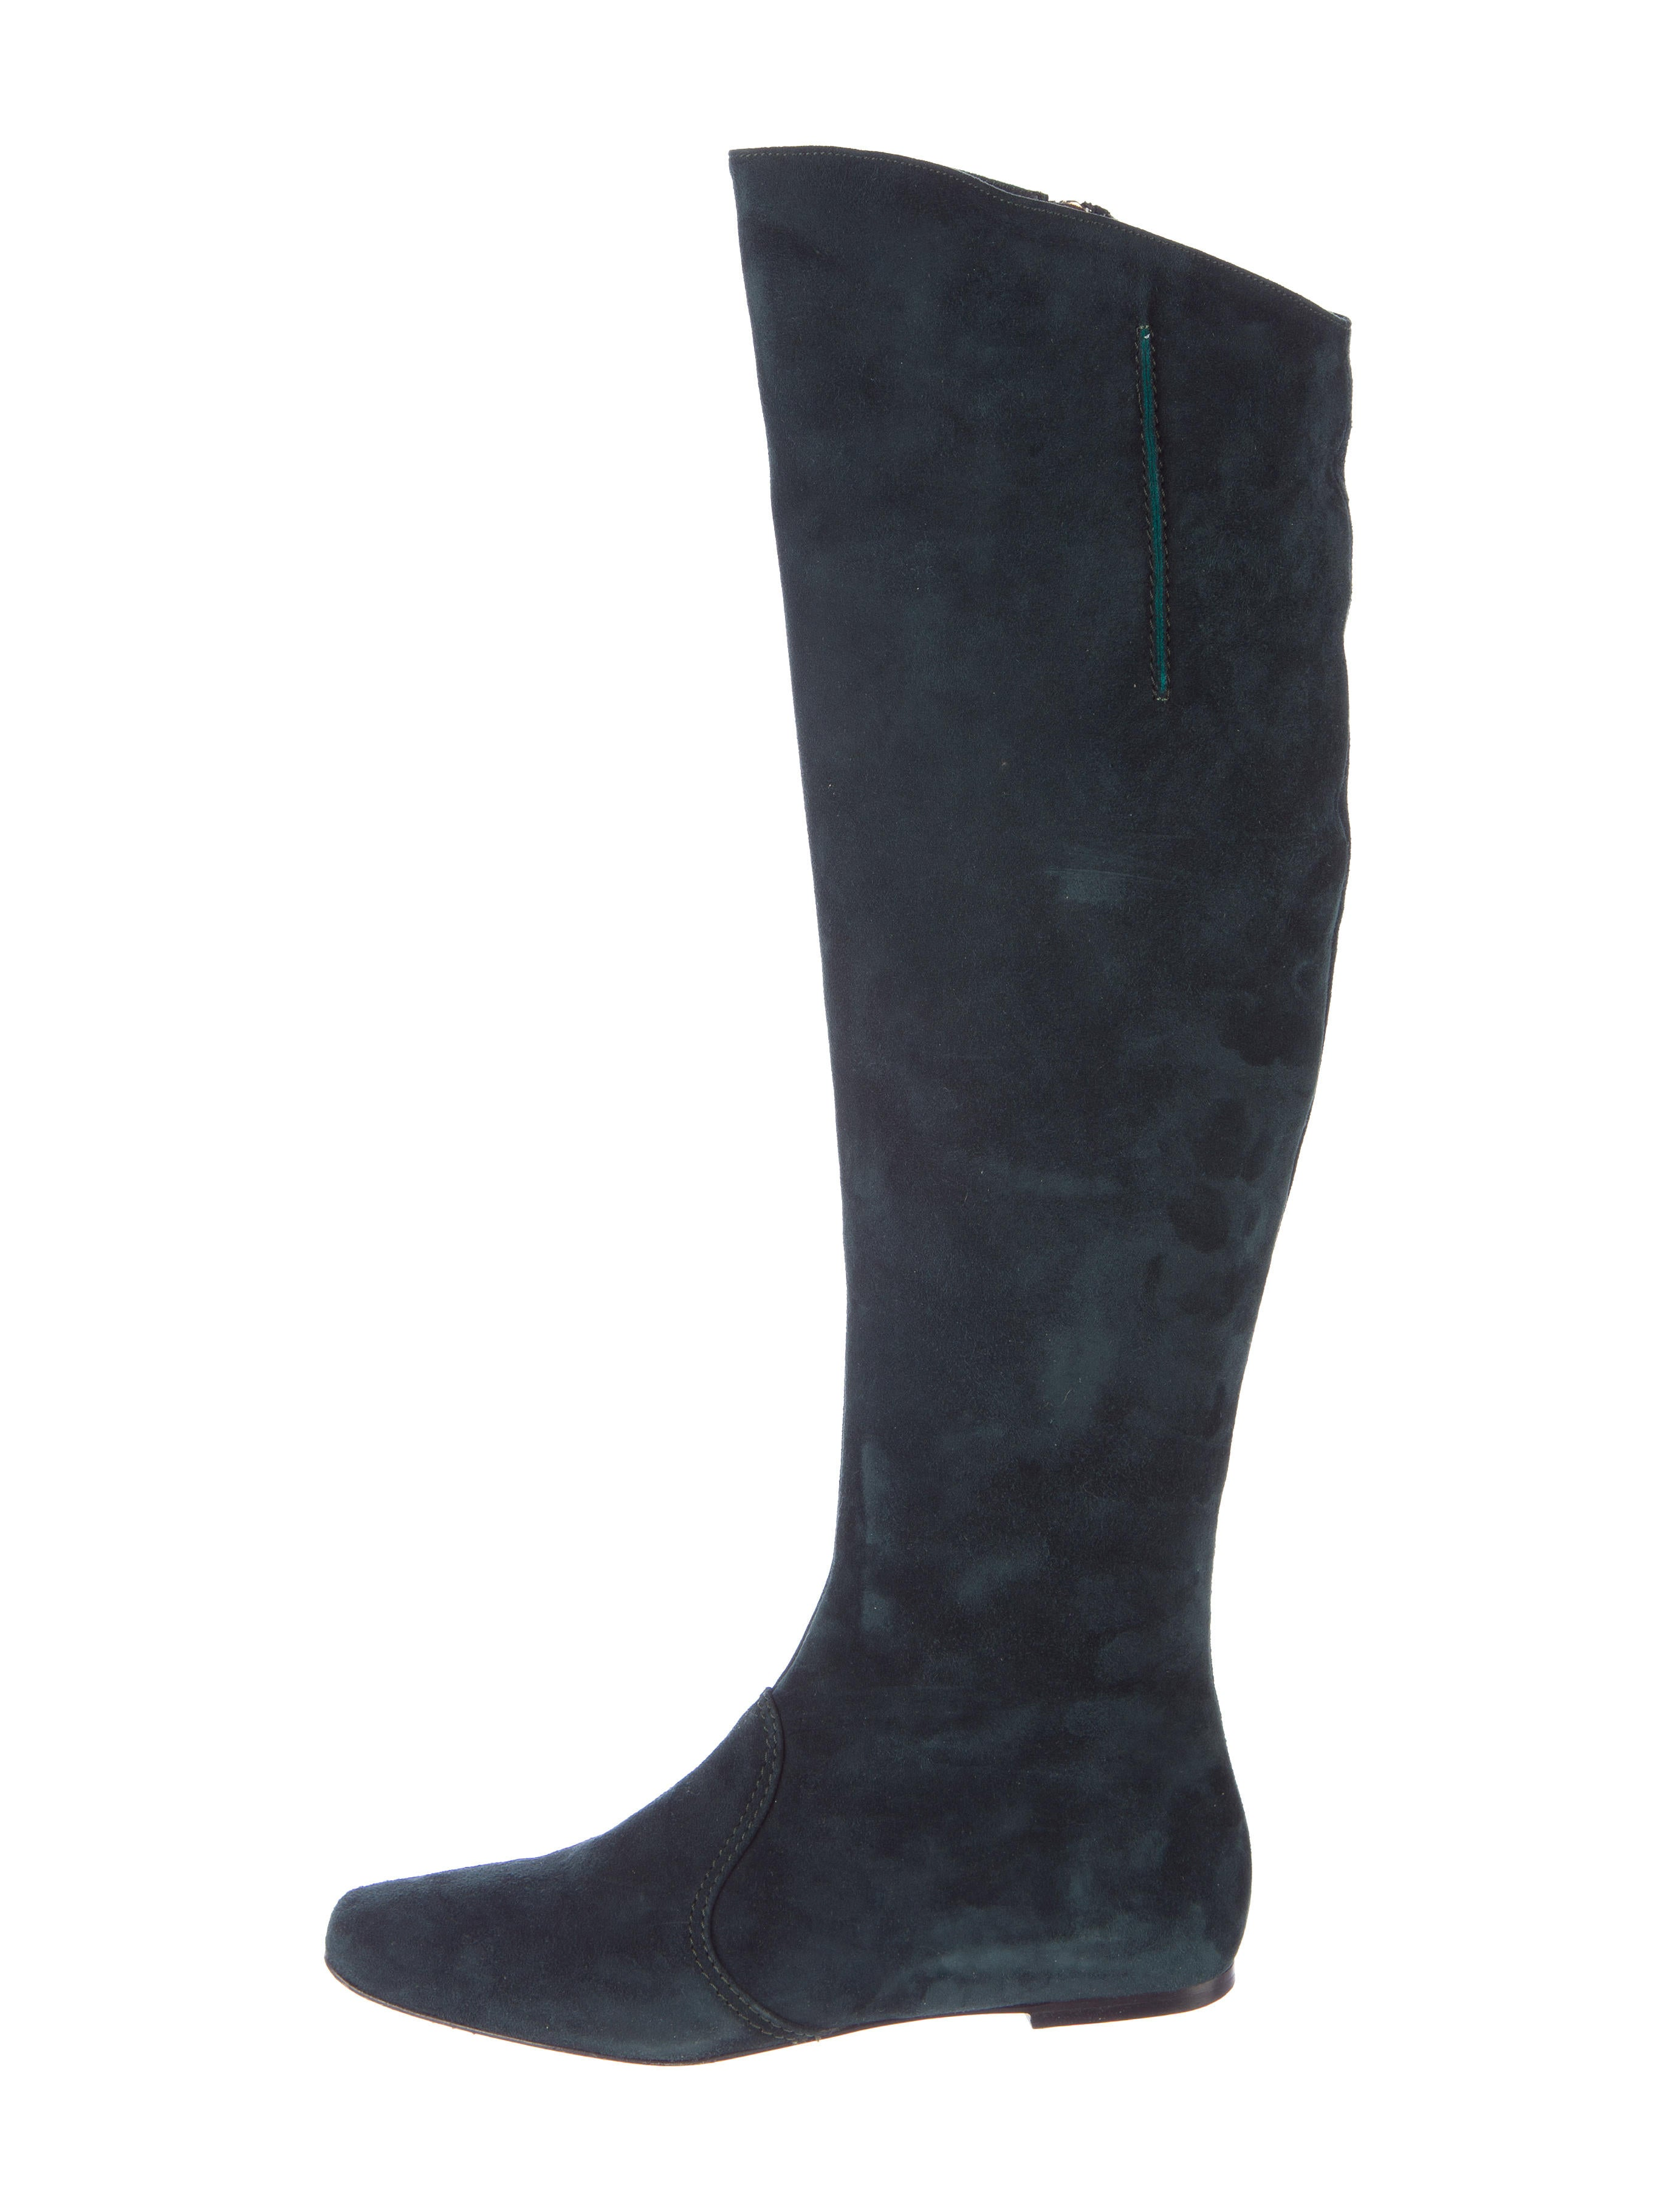 etro suede knee high boots shoes etr36094 the realreal